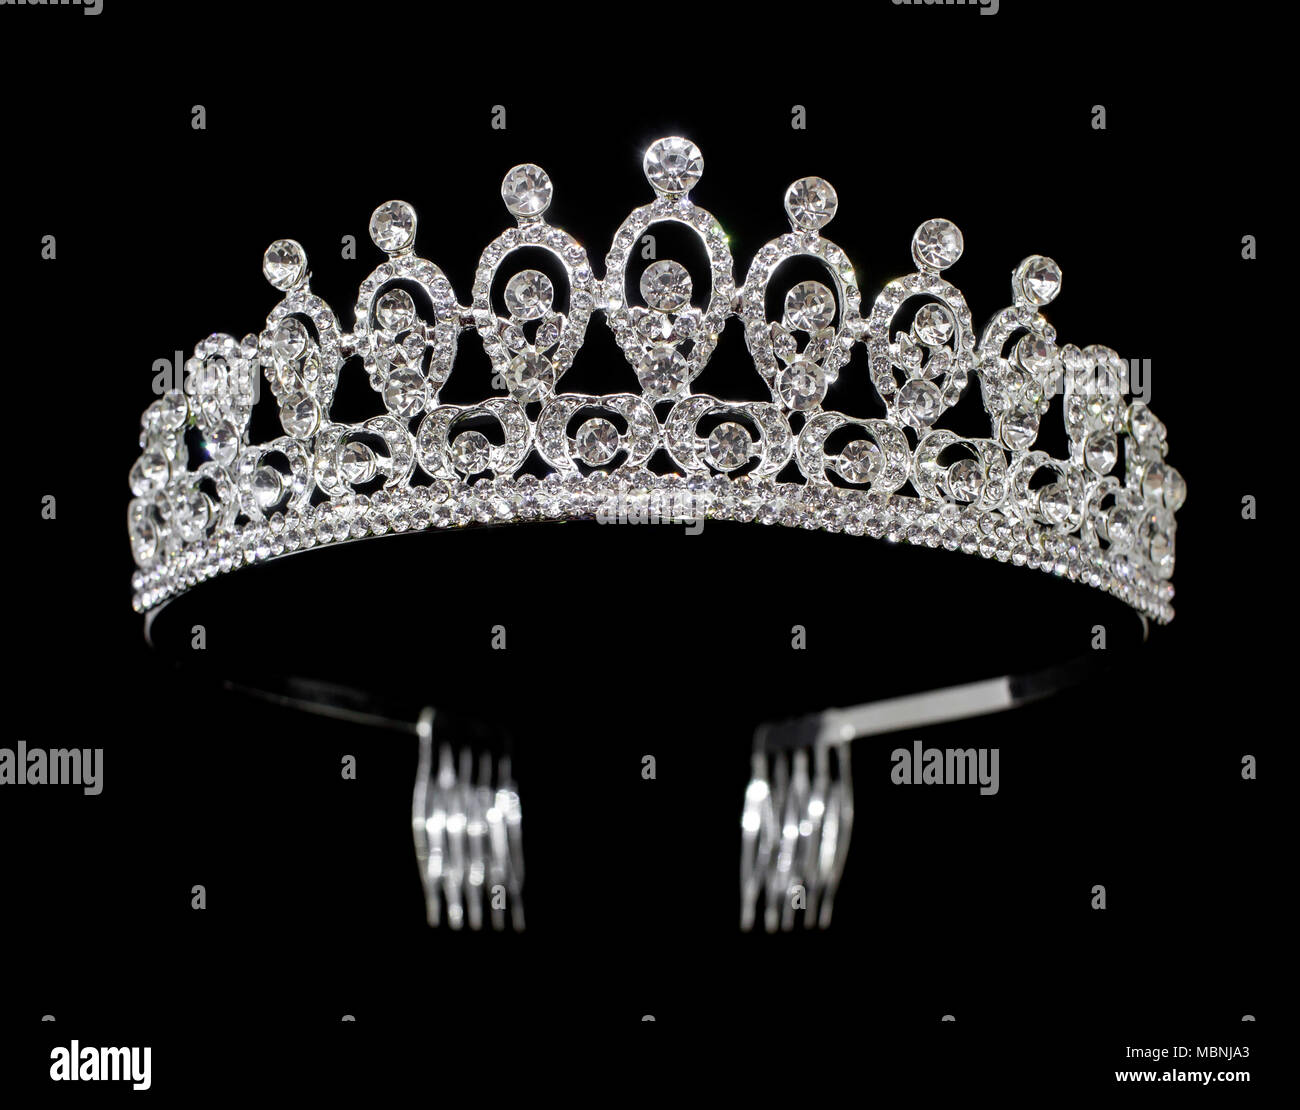 Silver tiara diadem with gems and diamonds isolated on black background -  Stock Image 3958c57aeedd